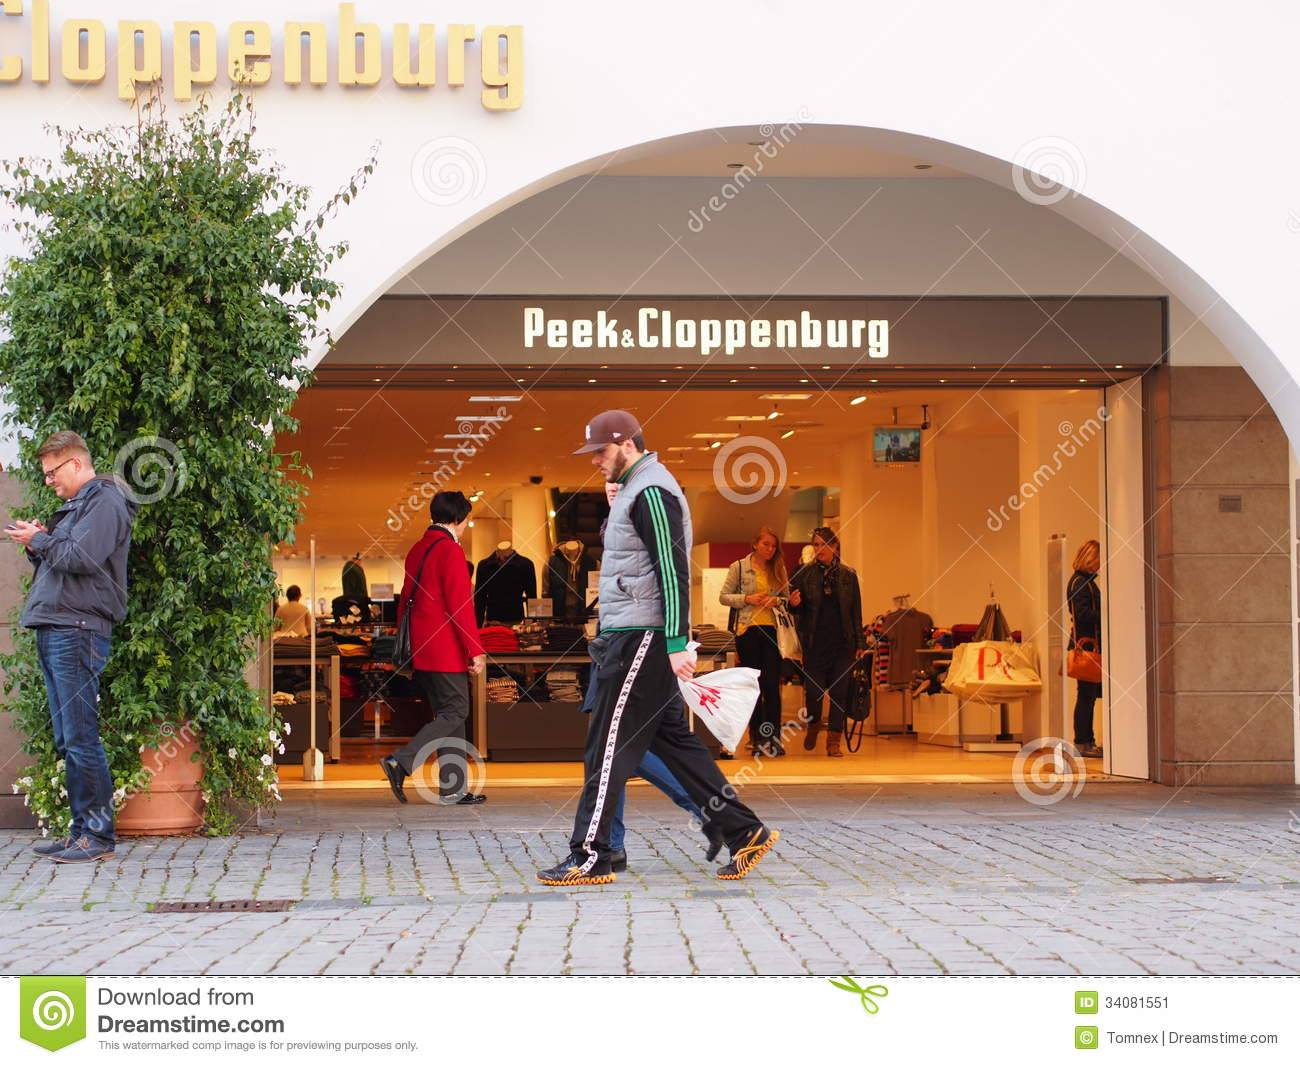 Clothes stores German clothing stores - READ MORE